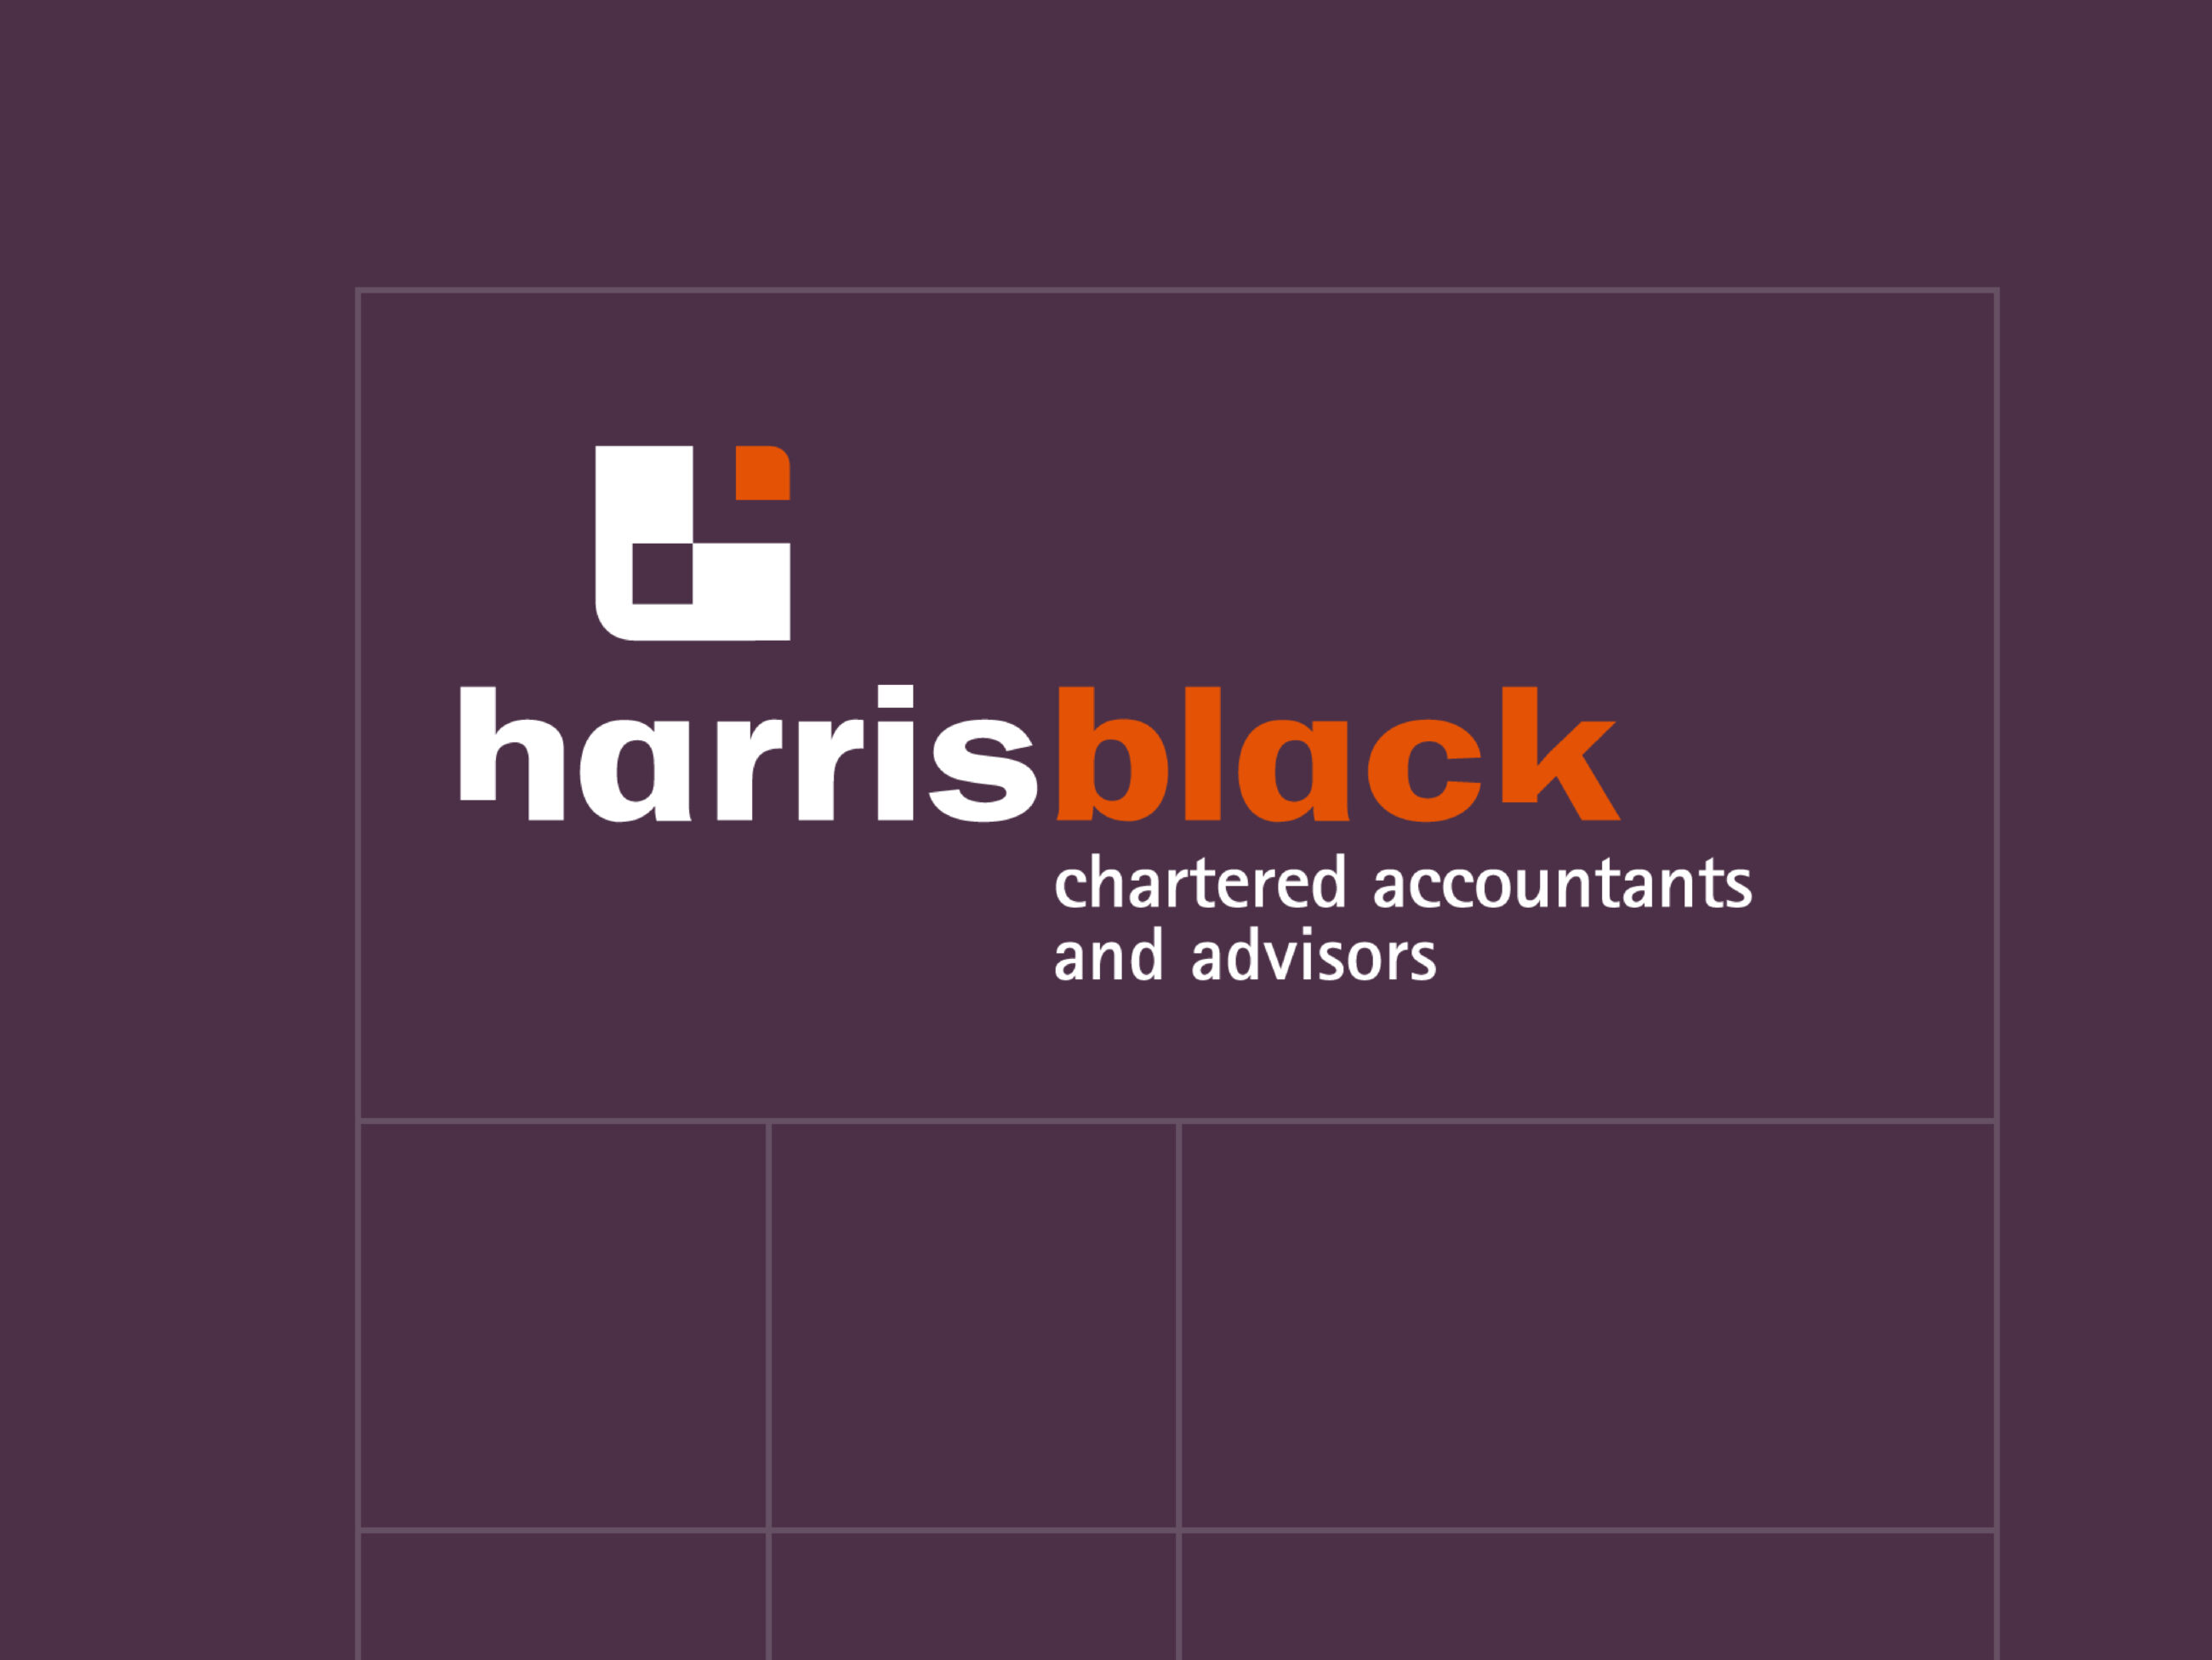 Harris Black branding example